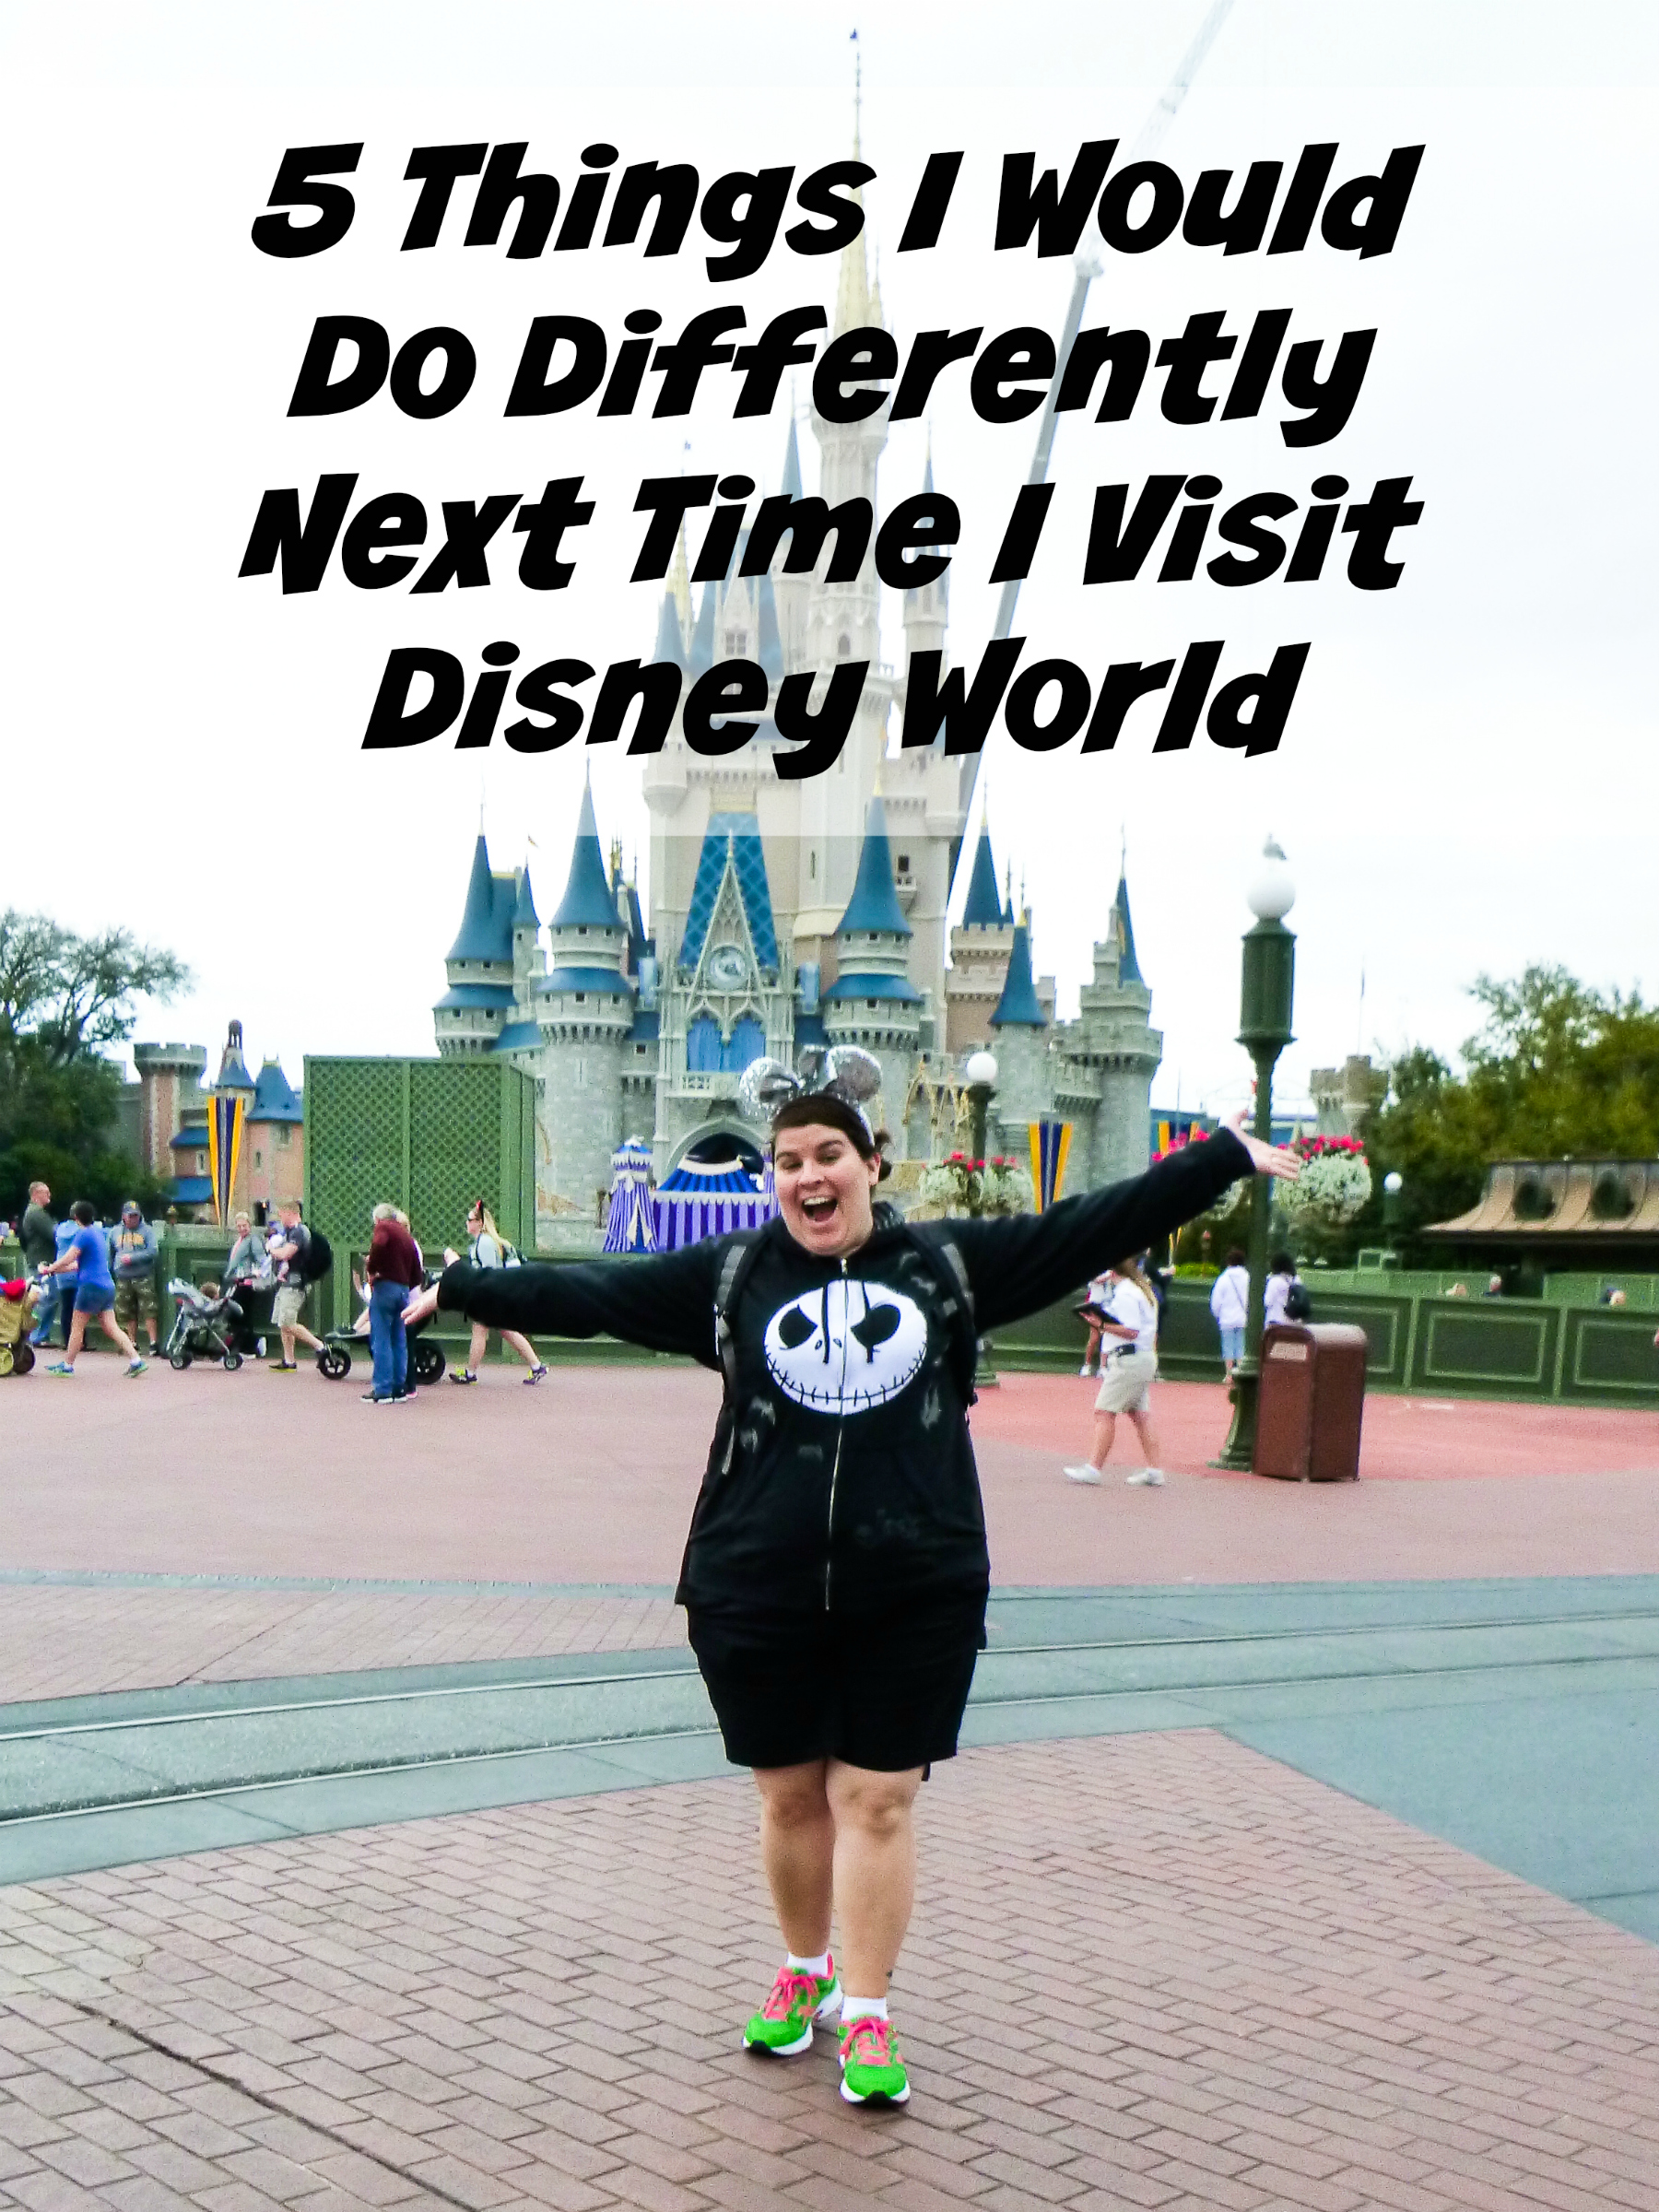 5 Things I Would Do Differently Next Time I Visit Disney World